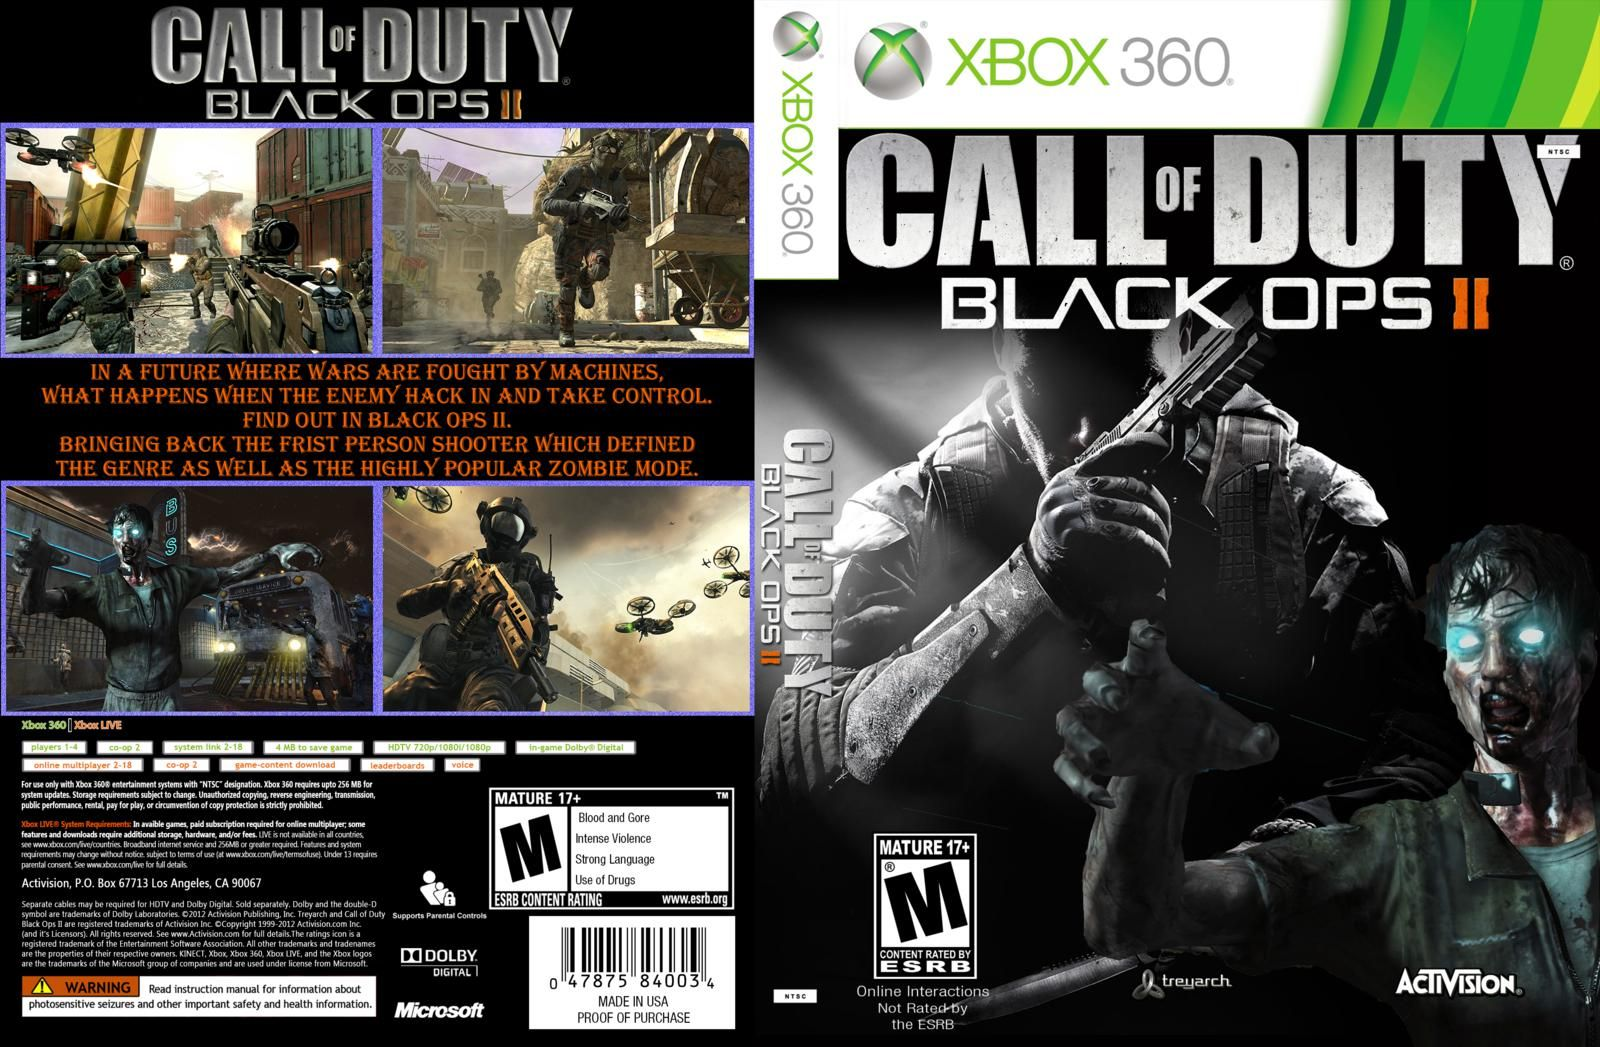 Call of duty black ops 2 xbox cover